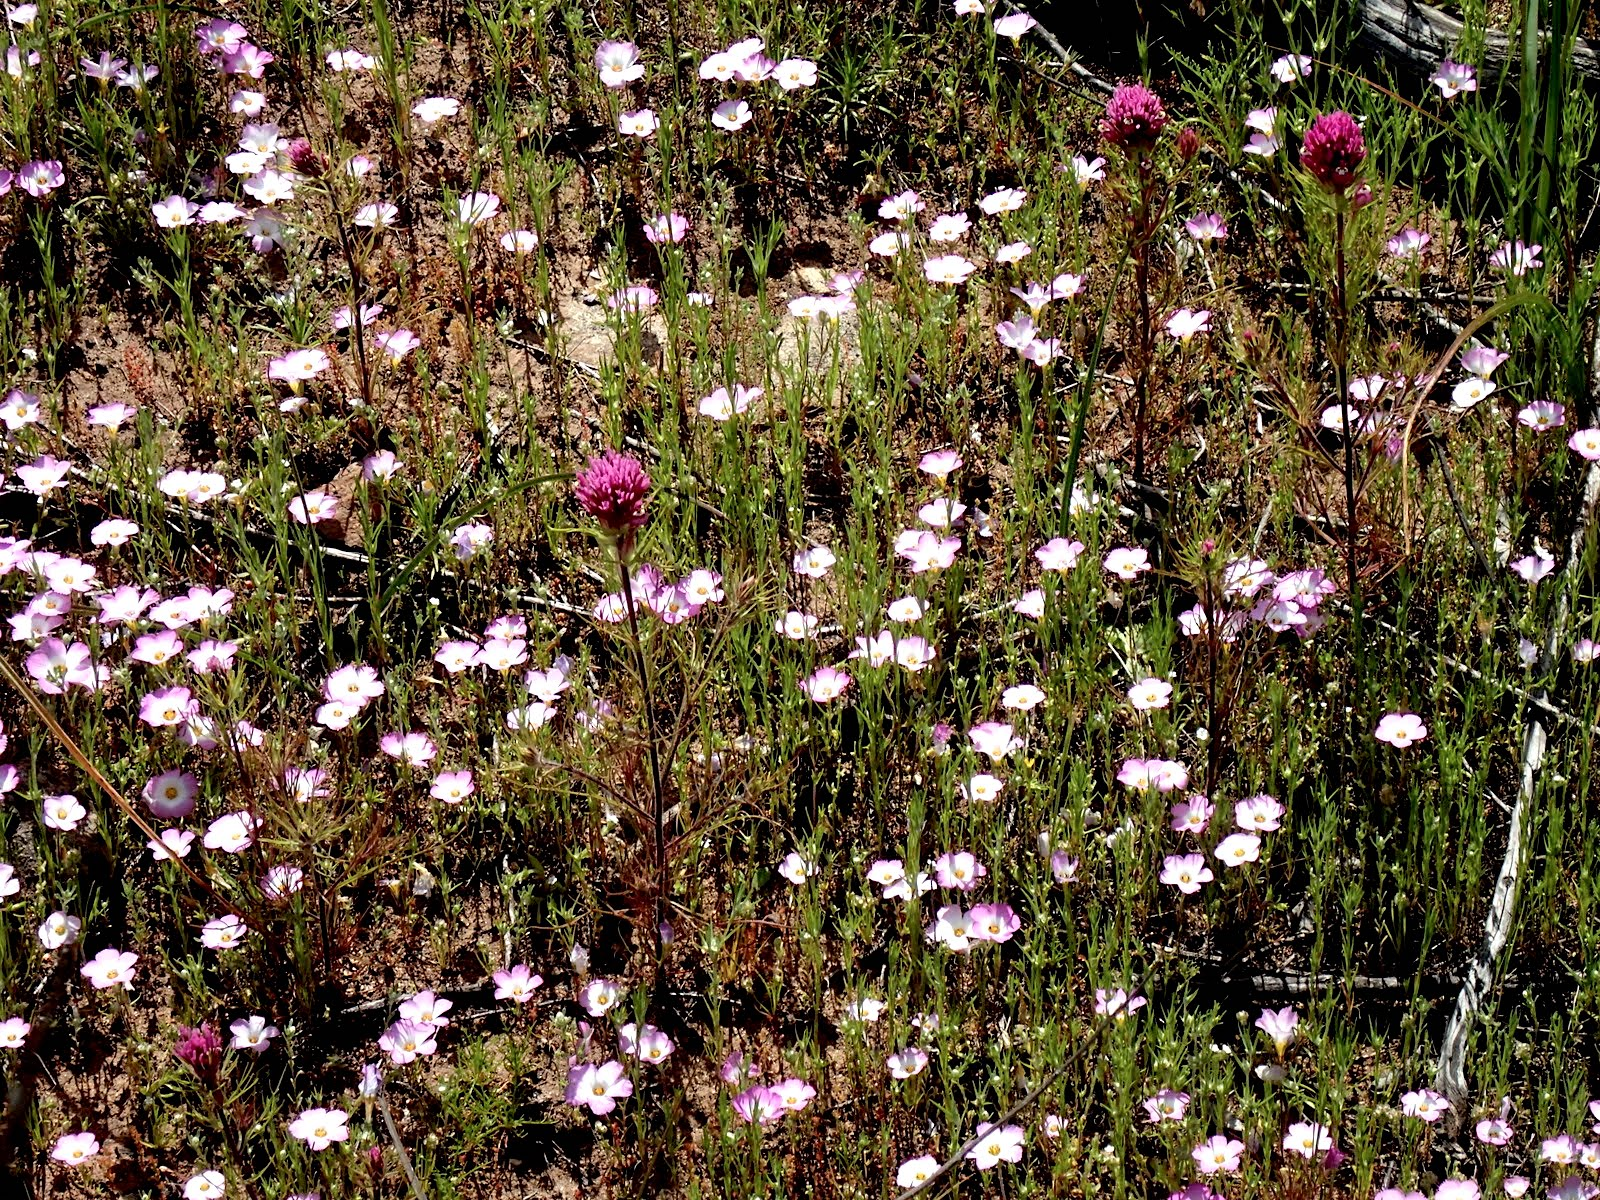 Ground Pinks (Linanthus dianthiflorus) and Owl's Clover (Castilleja exserta) PC: Lee Gordon